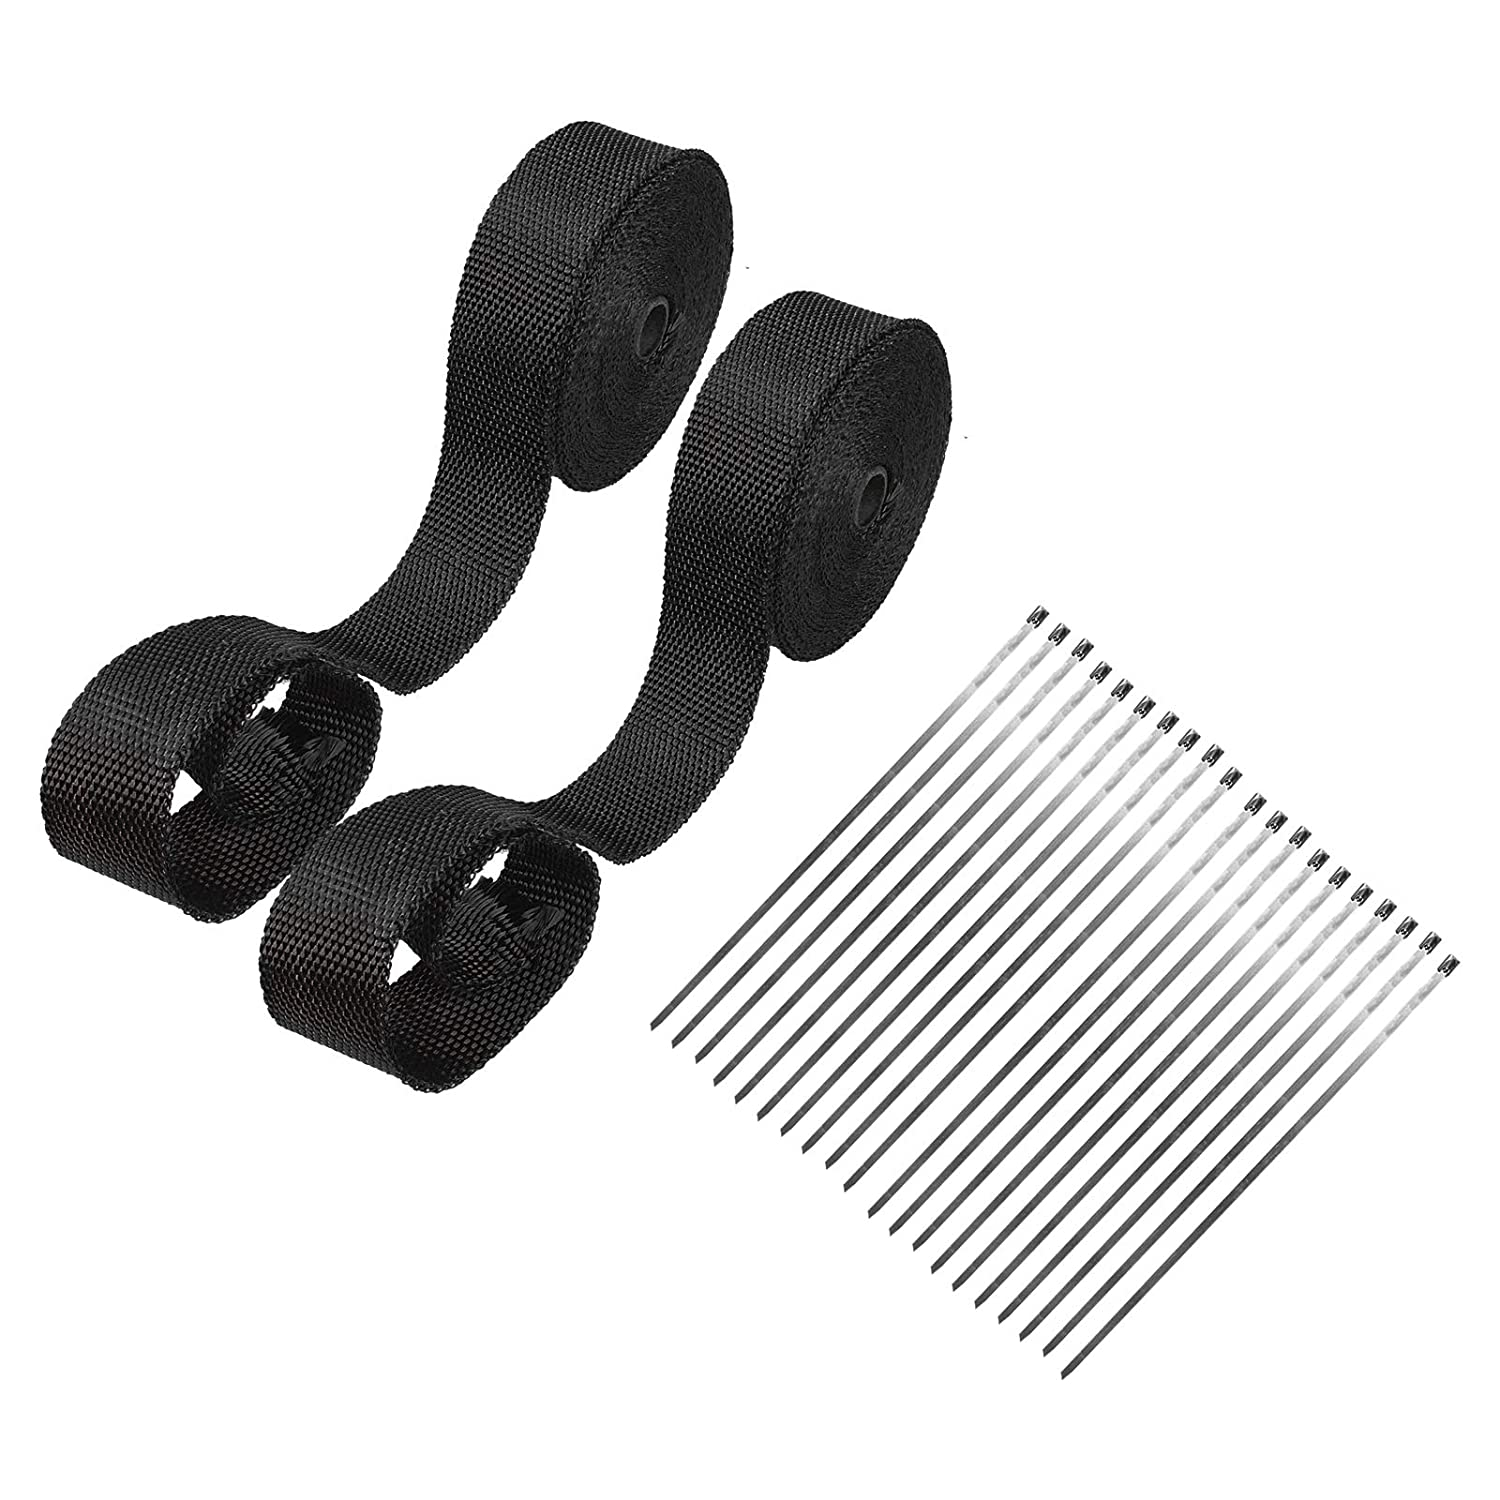 will lose color Superfastracing 2 Roll 2 50 Feet Black Fiberglass Exhaust Heat Wrap Roll For Motorcycle Manifold Header Pipe Heat Wrap Tape with Stainless Ties